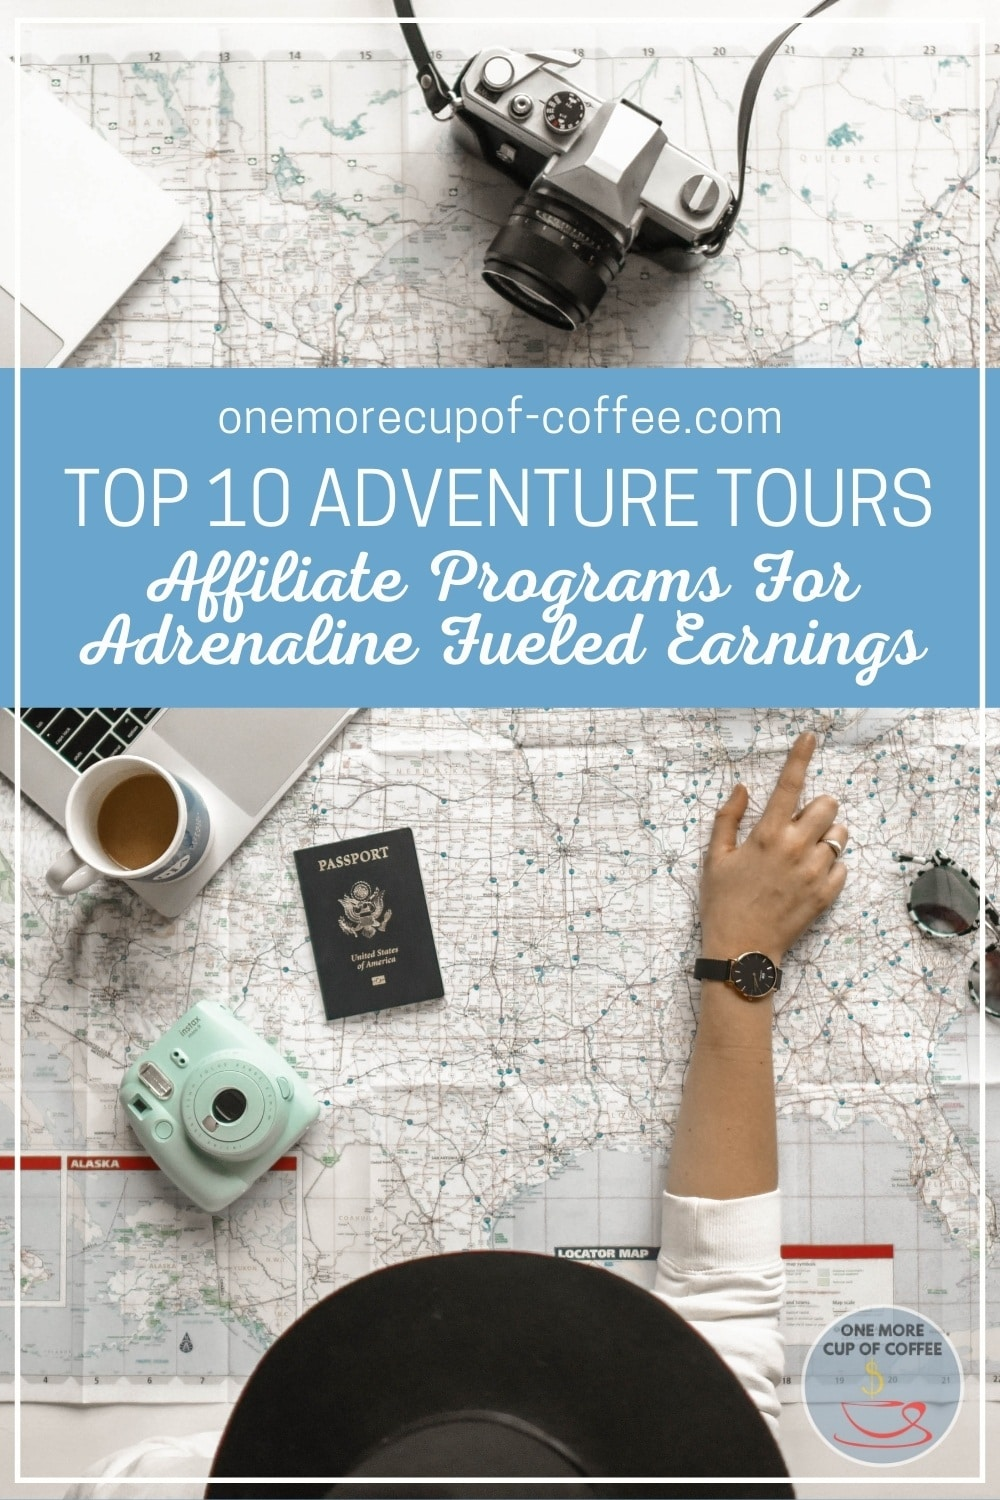 """top view image of a hand pointing to a map with cameras, passport, laptop, and cup of coffee; with text overlay """"Top 10 Adventure Tours Affiliate Programs For Adrenaline Fueled Earnings"""""""